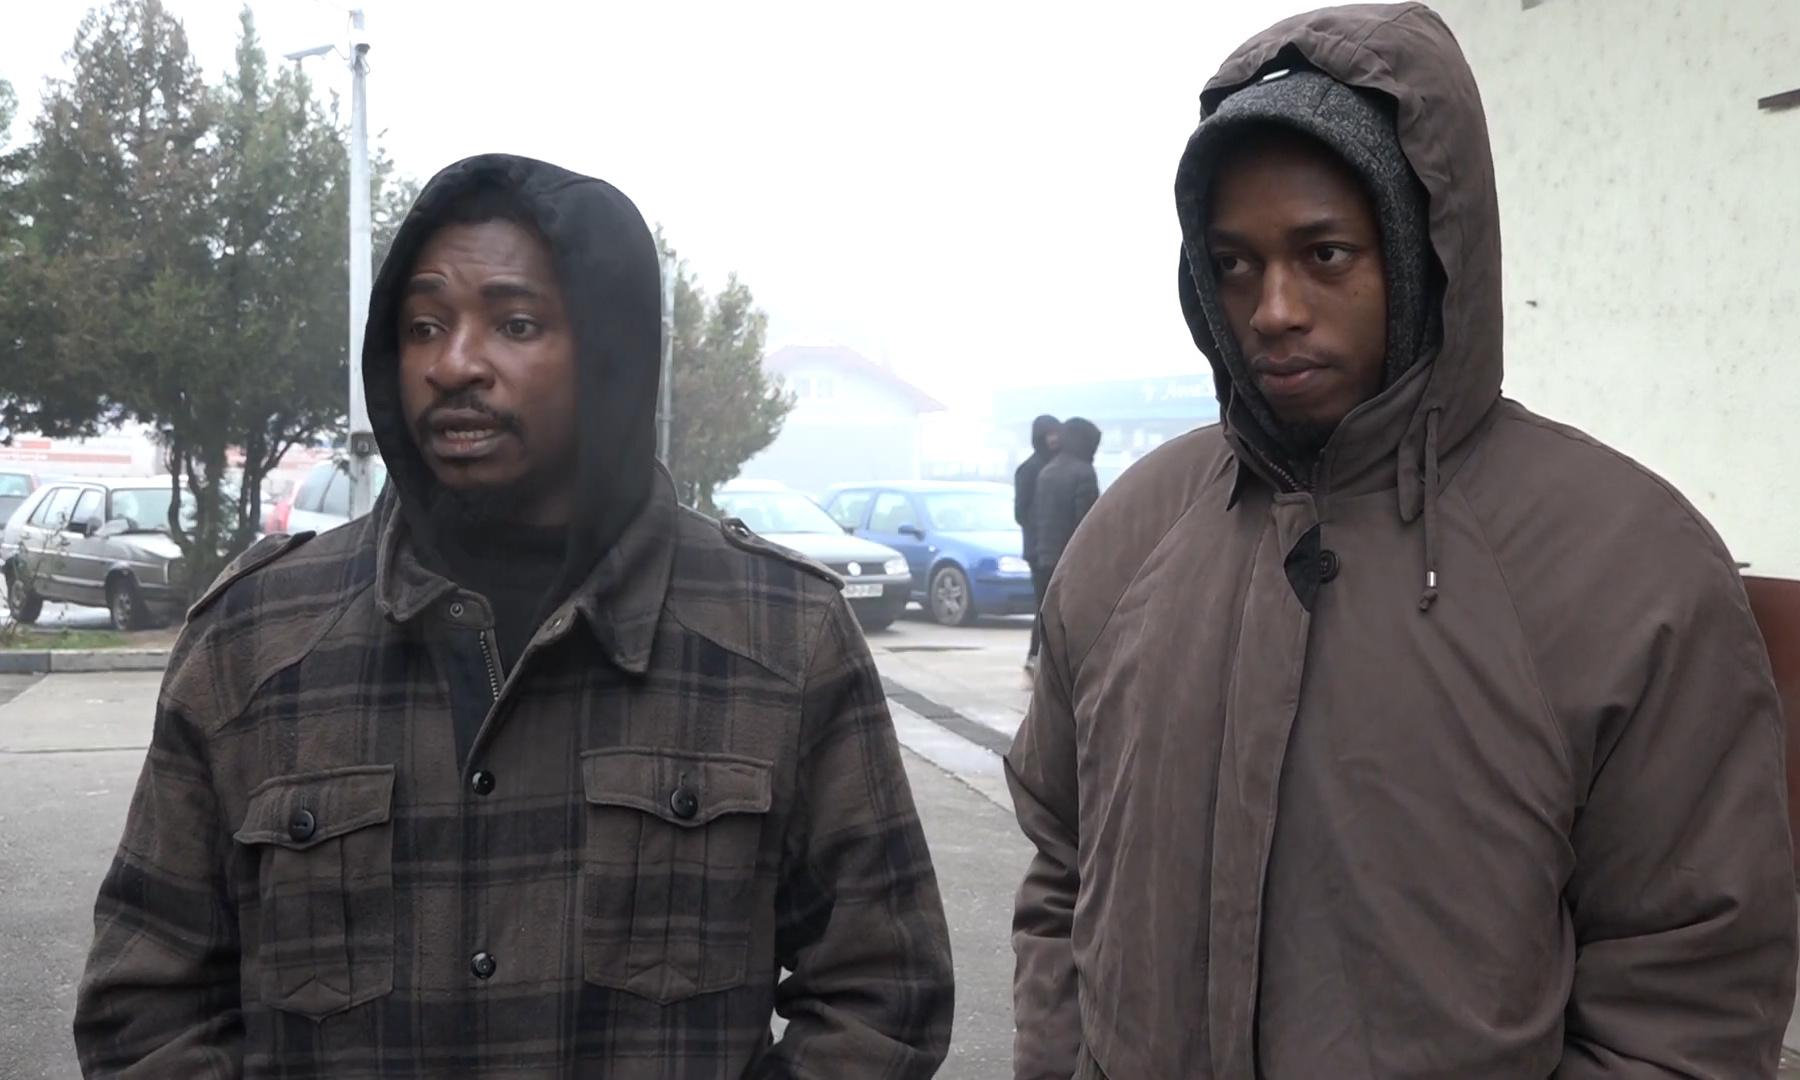 Nigerian students deported to Bosnia plead to be sent home